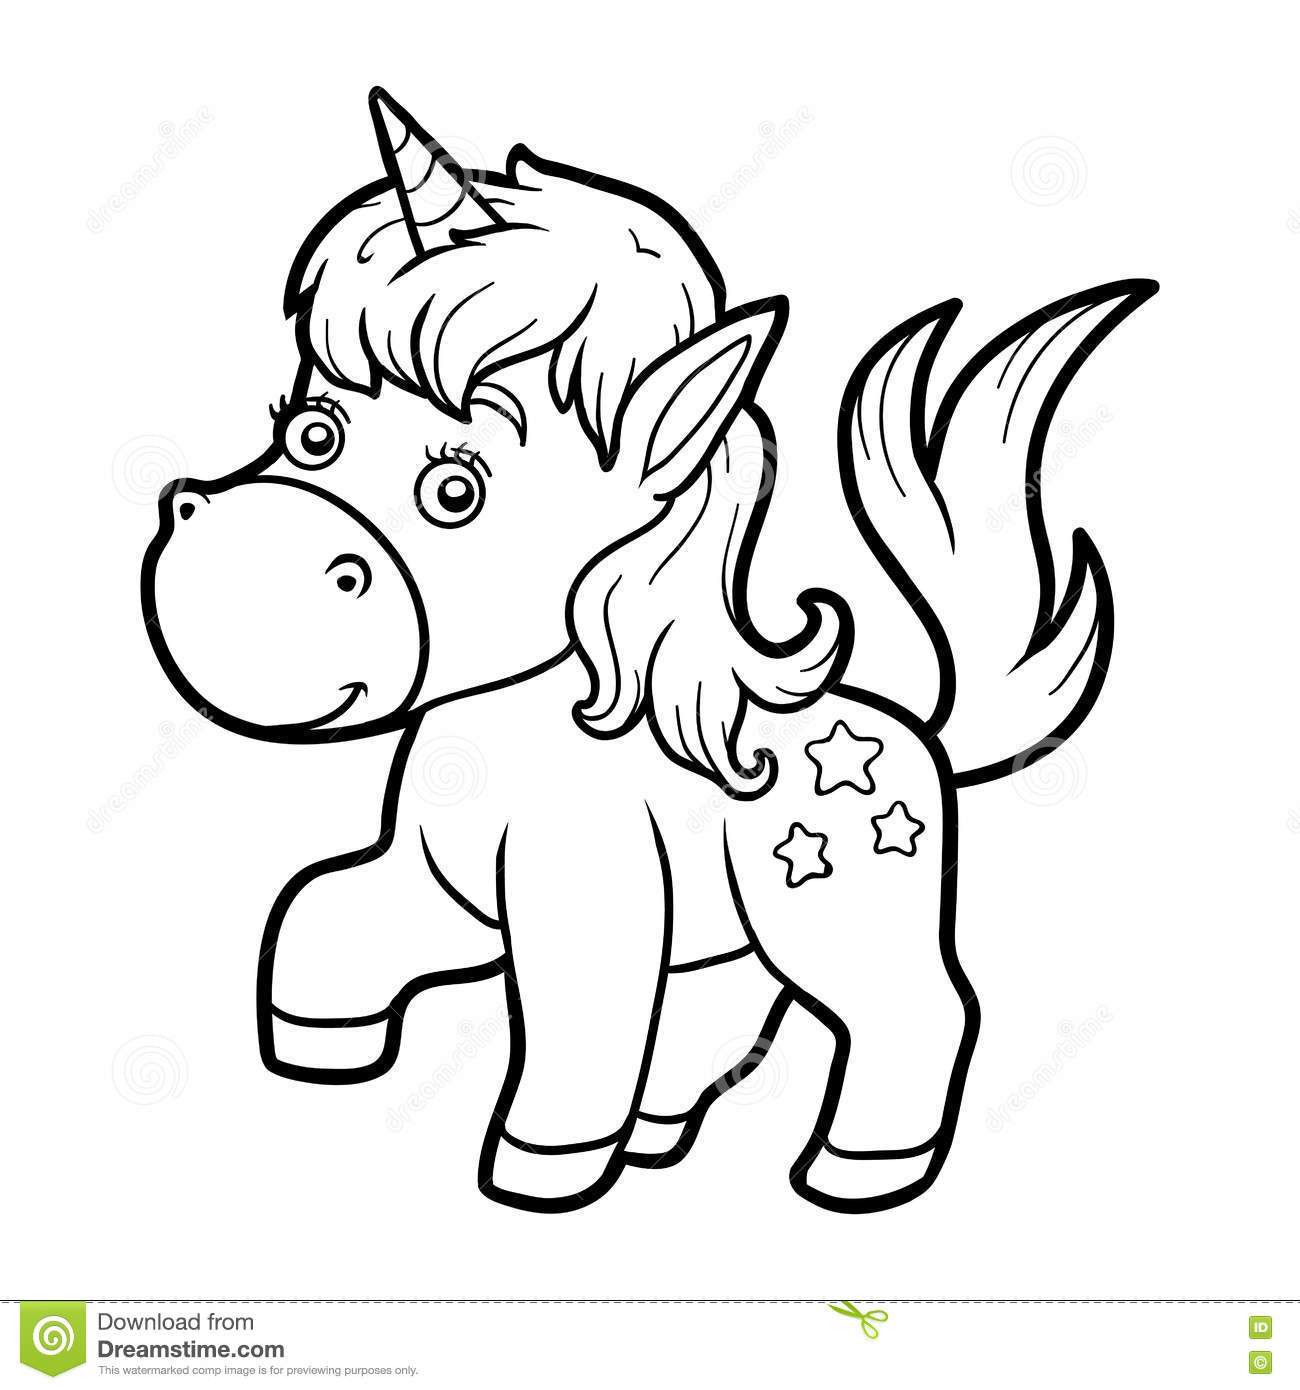 Coloring book for children coloring page with little unicorn